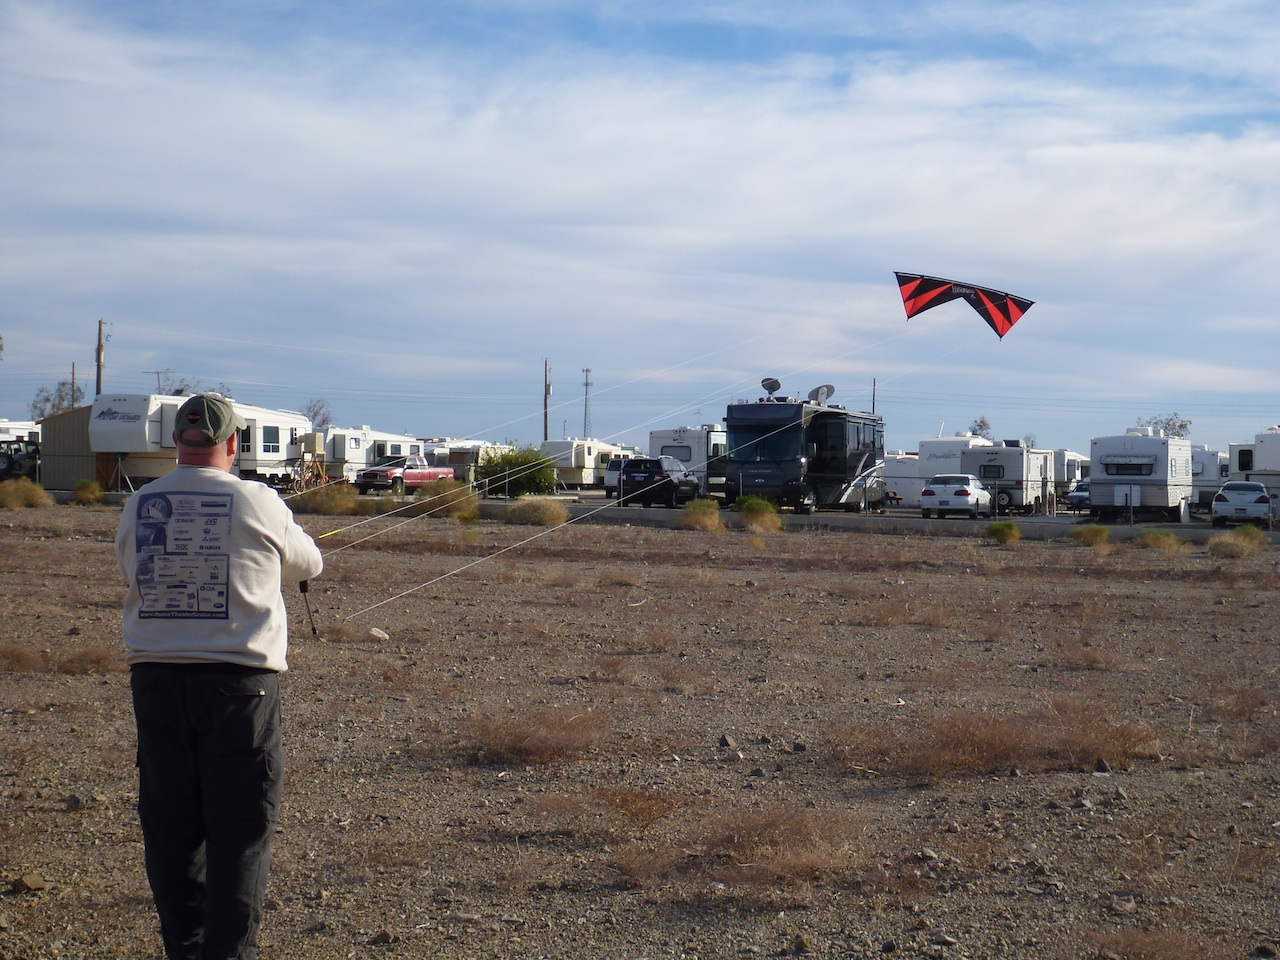 David Flying His Stunt Kite.  Our Coach In The Background.